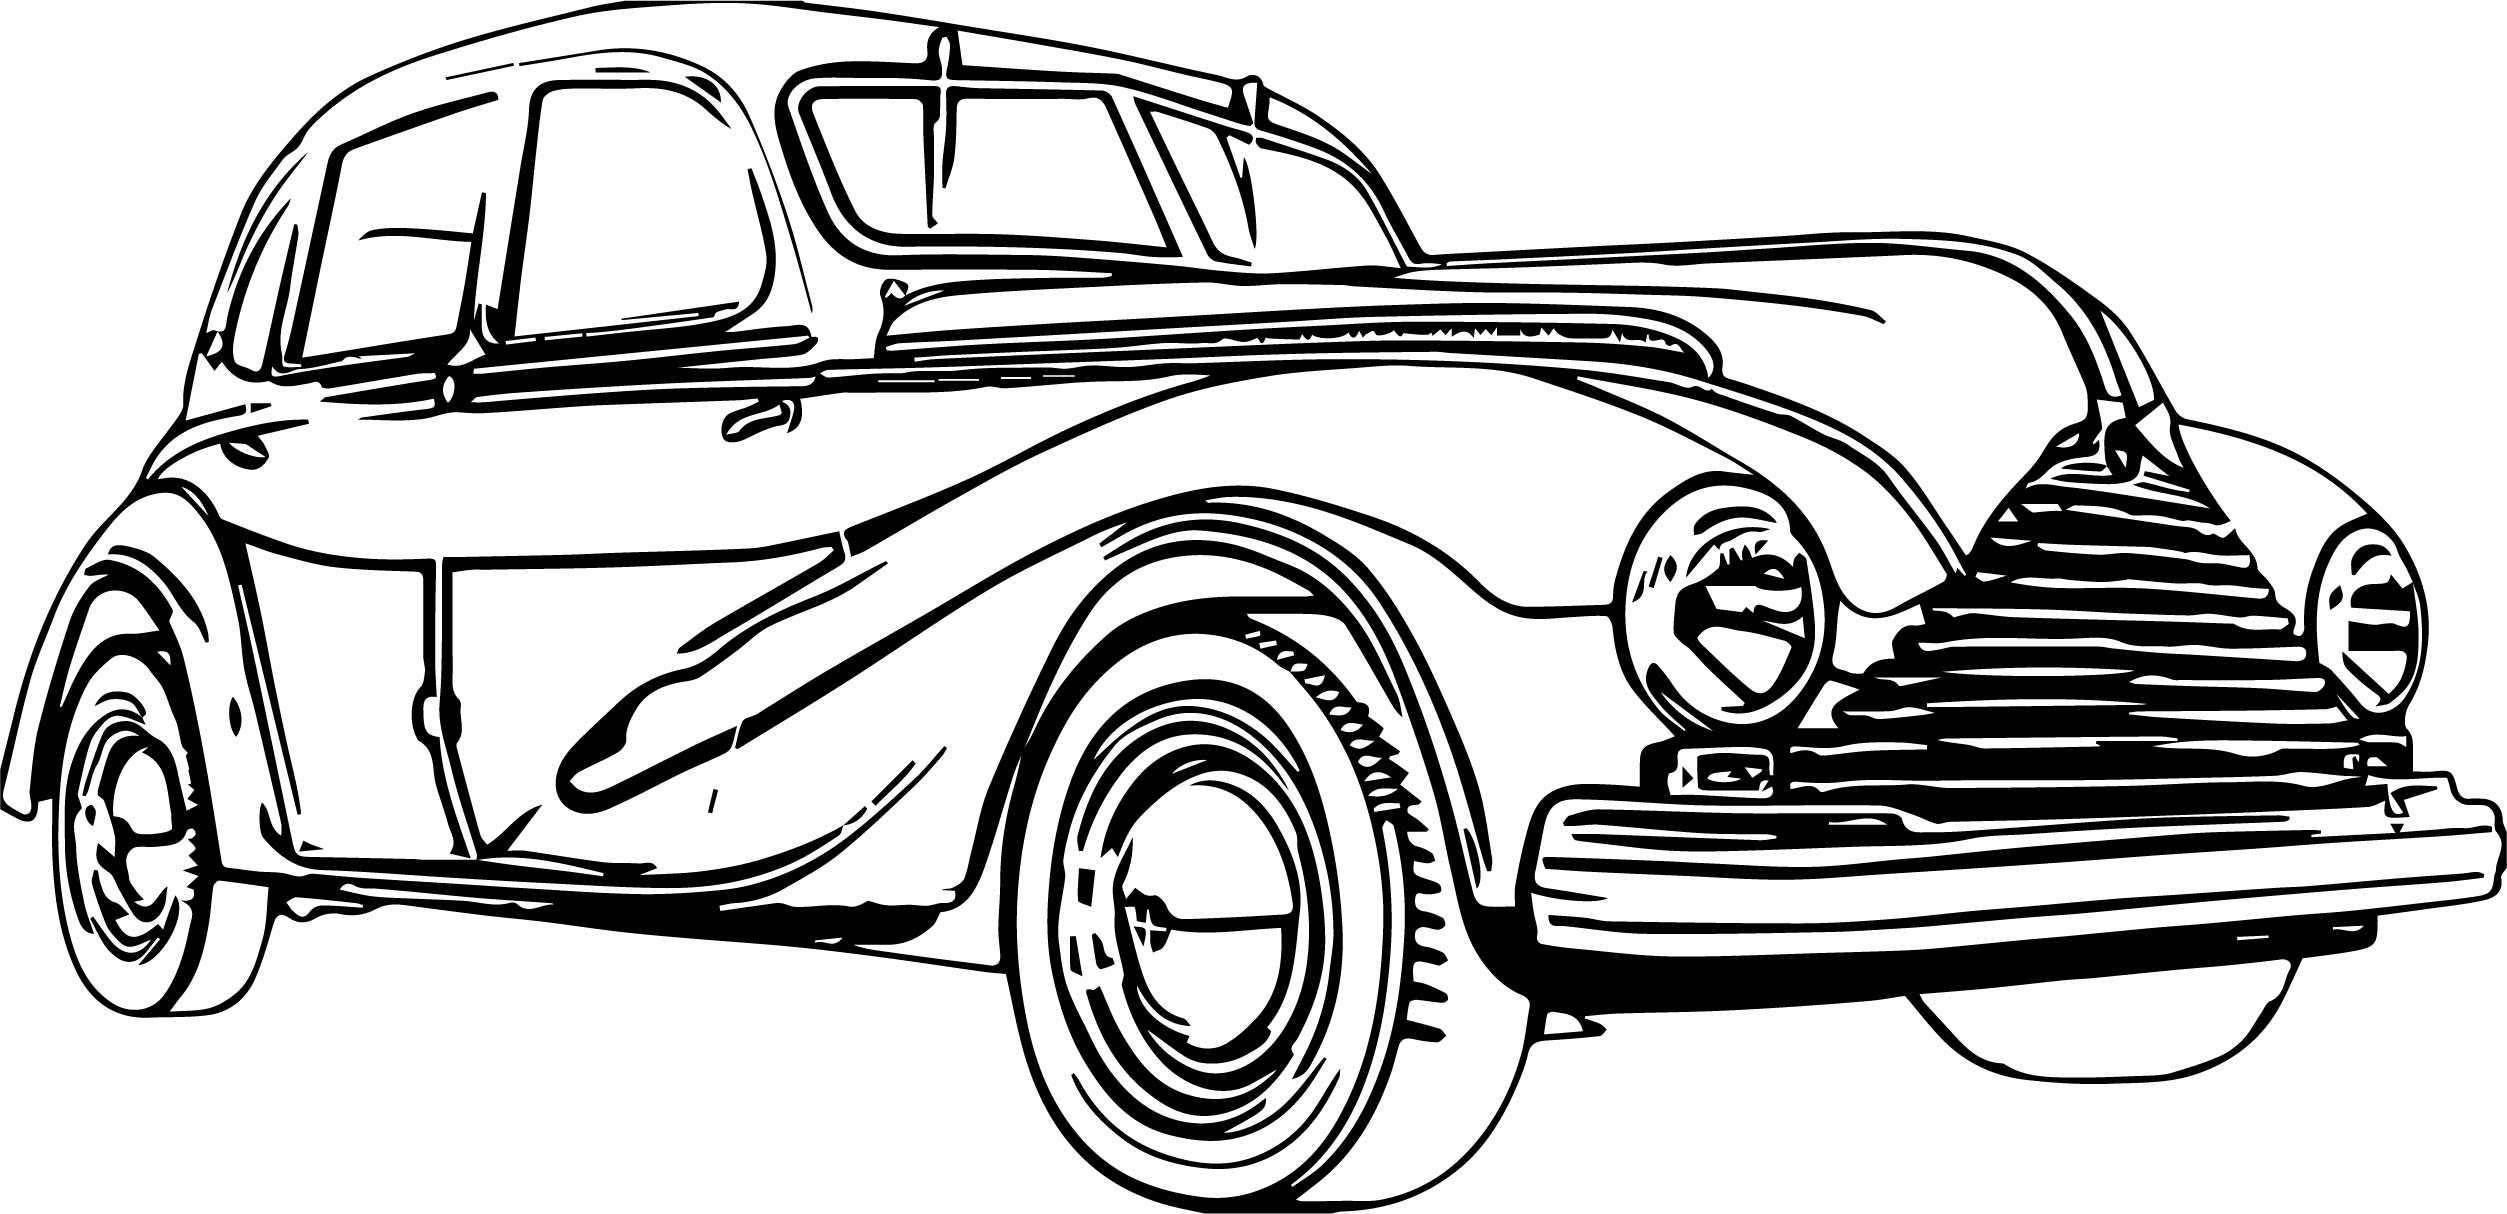 classic car coloring pages small vintage antique car coloring page wecoloringpagecom coloring car pages classic